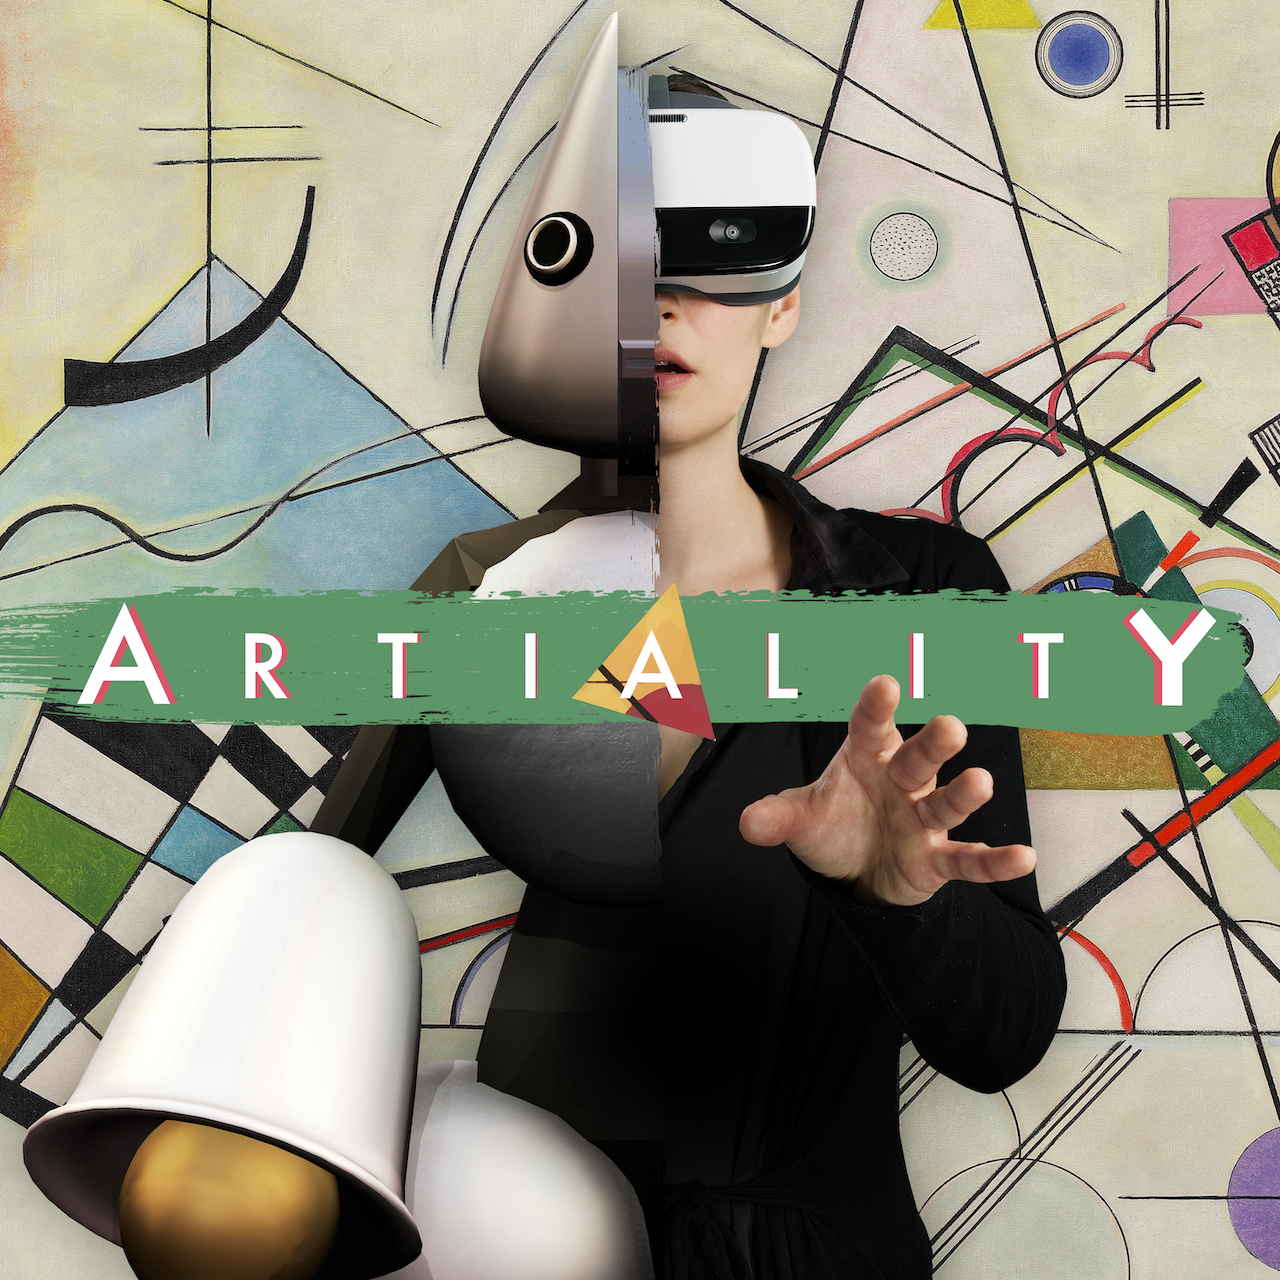 ARTiality – The Art Of Abstraction